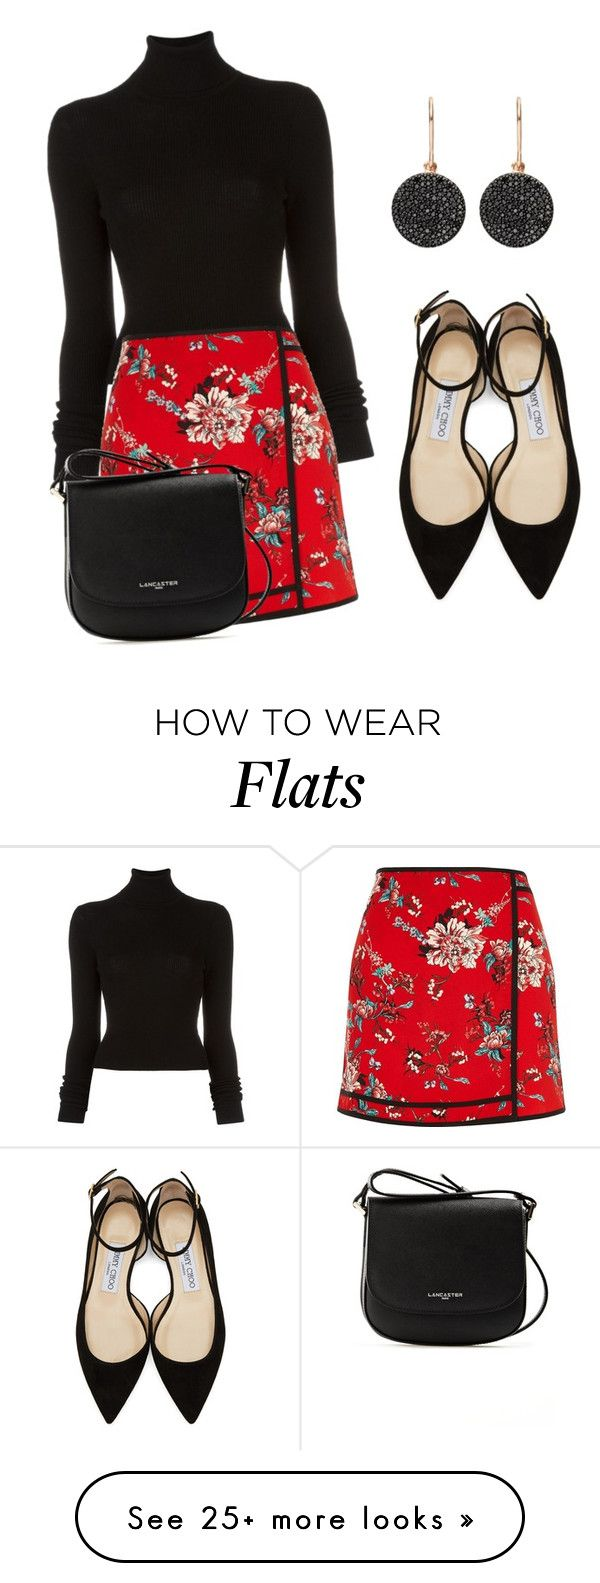 """Без названия #528"" by alina12103 on Polyvore featuring BLK DNM, River Island, Jimmy Choo, Astley Clarke and Lancaster"